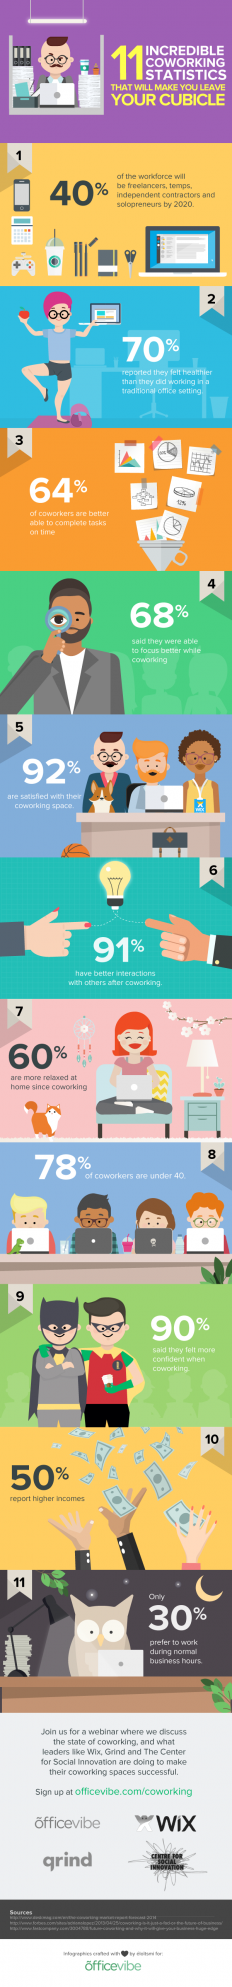 11 Incredible Coworking Statistics – Infographic